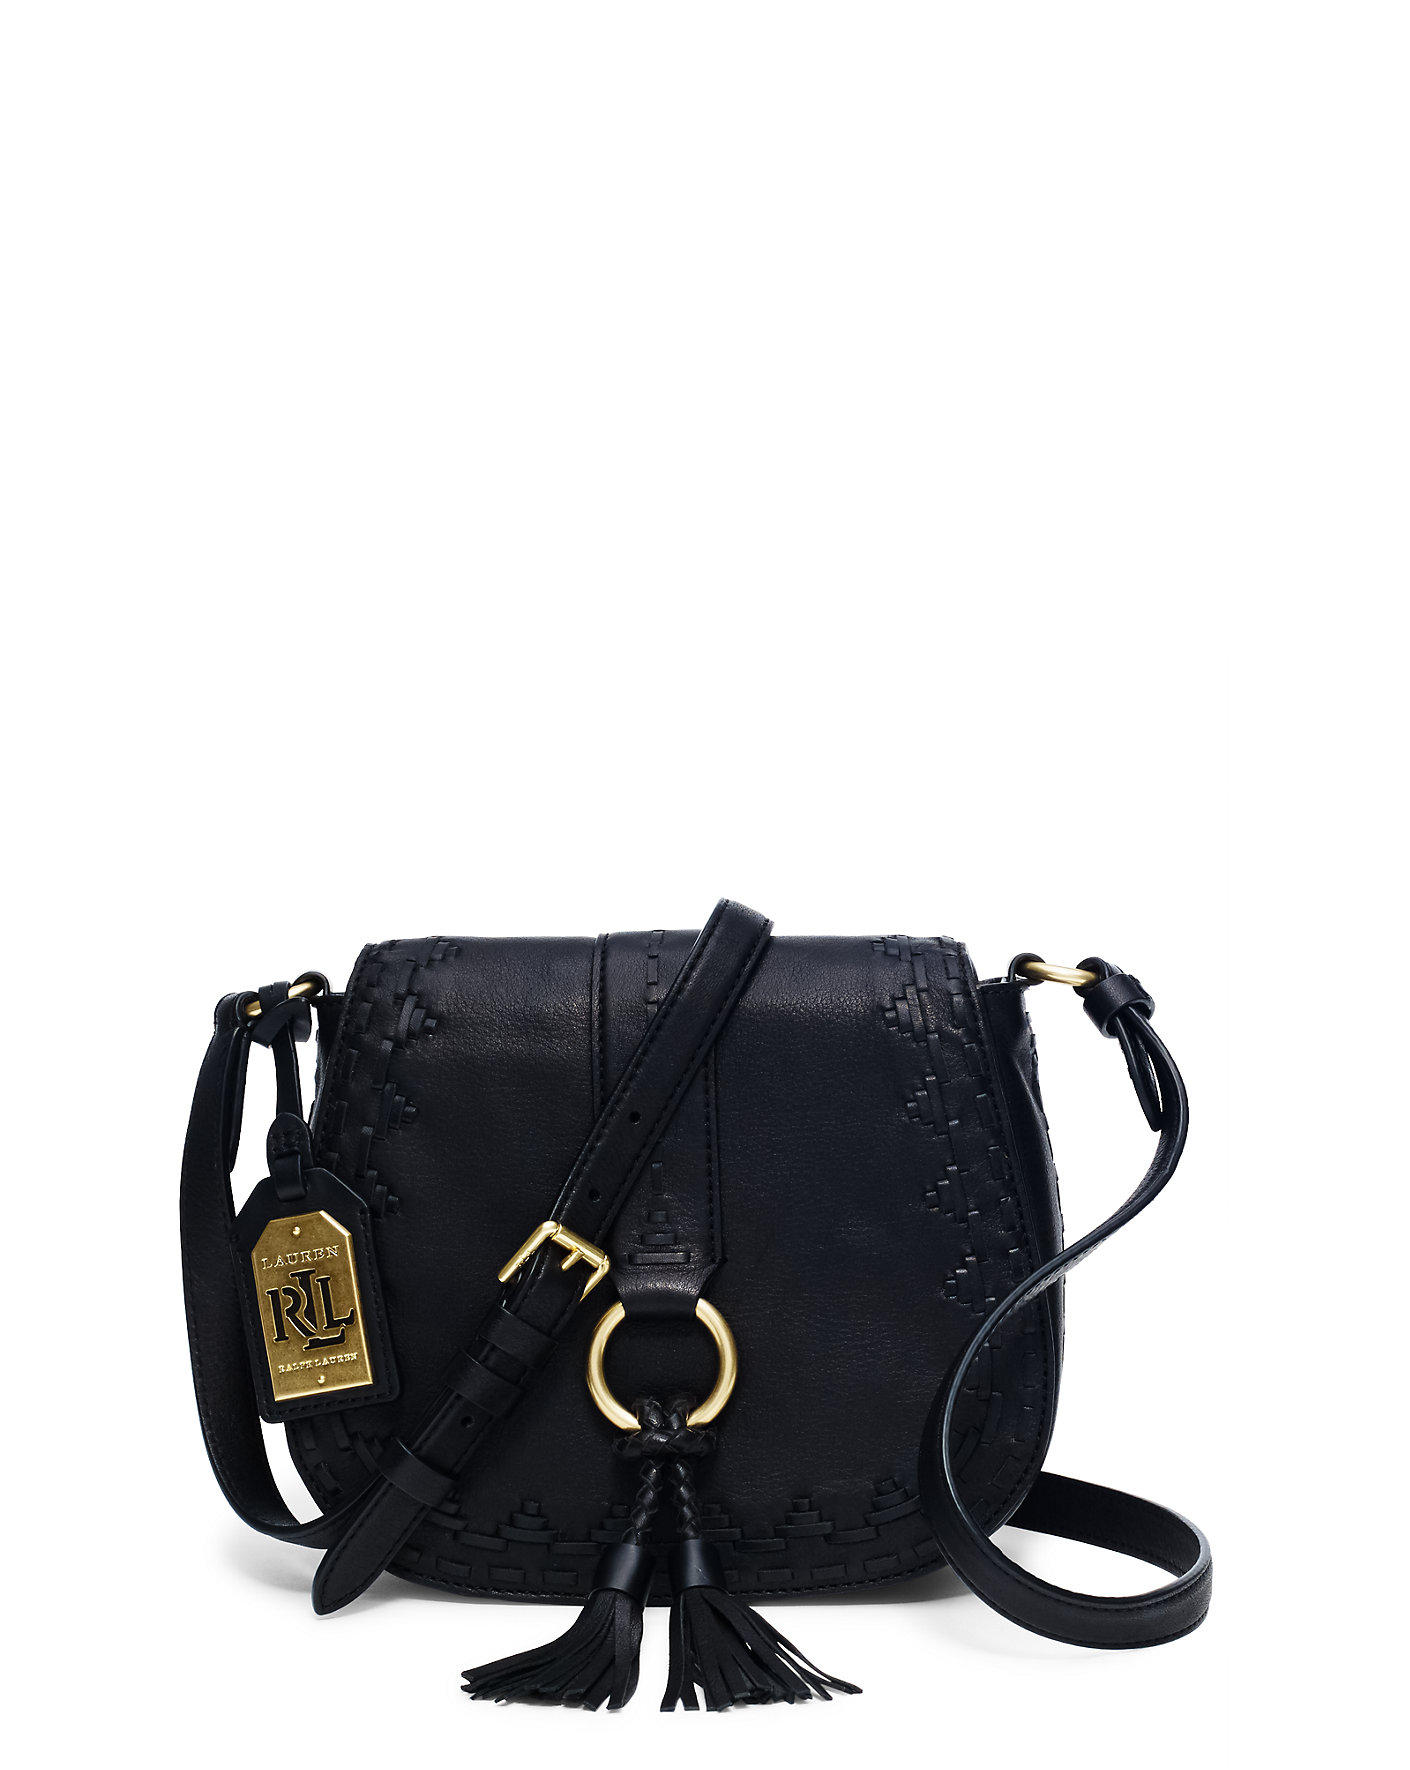 Ralph Lauren Ridley Leather Cross-body Bag